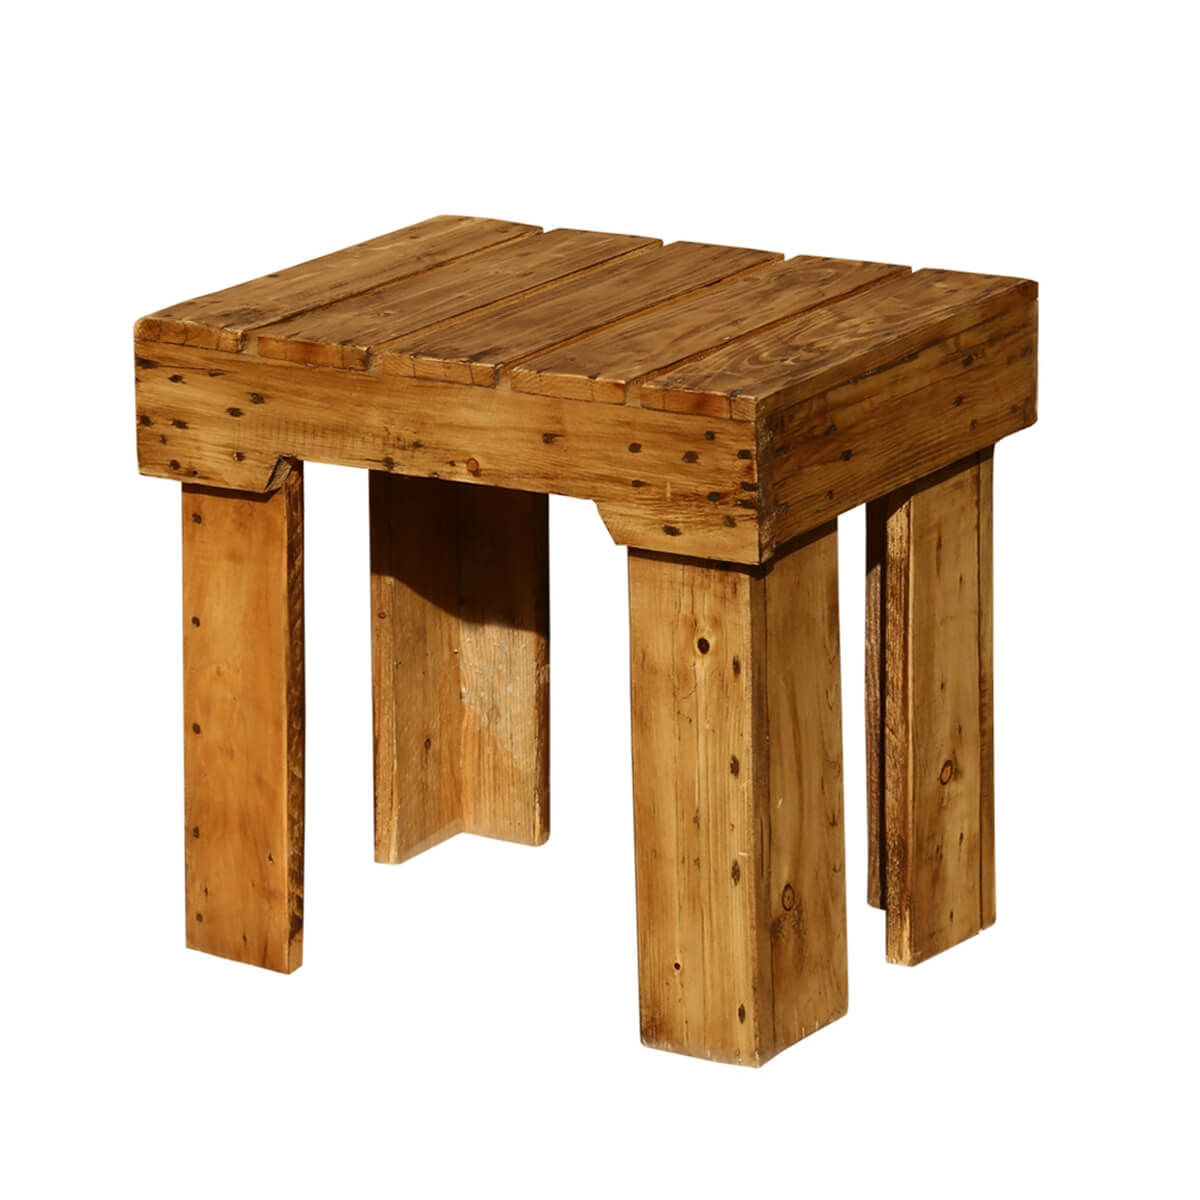 Newcastle Handcrafted Pallet Wood Stool